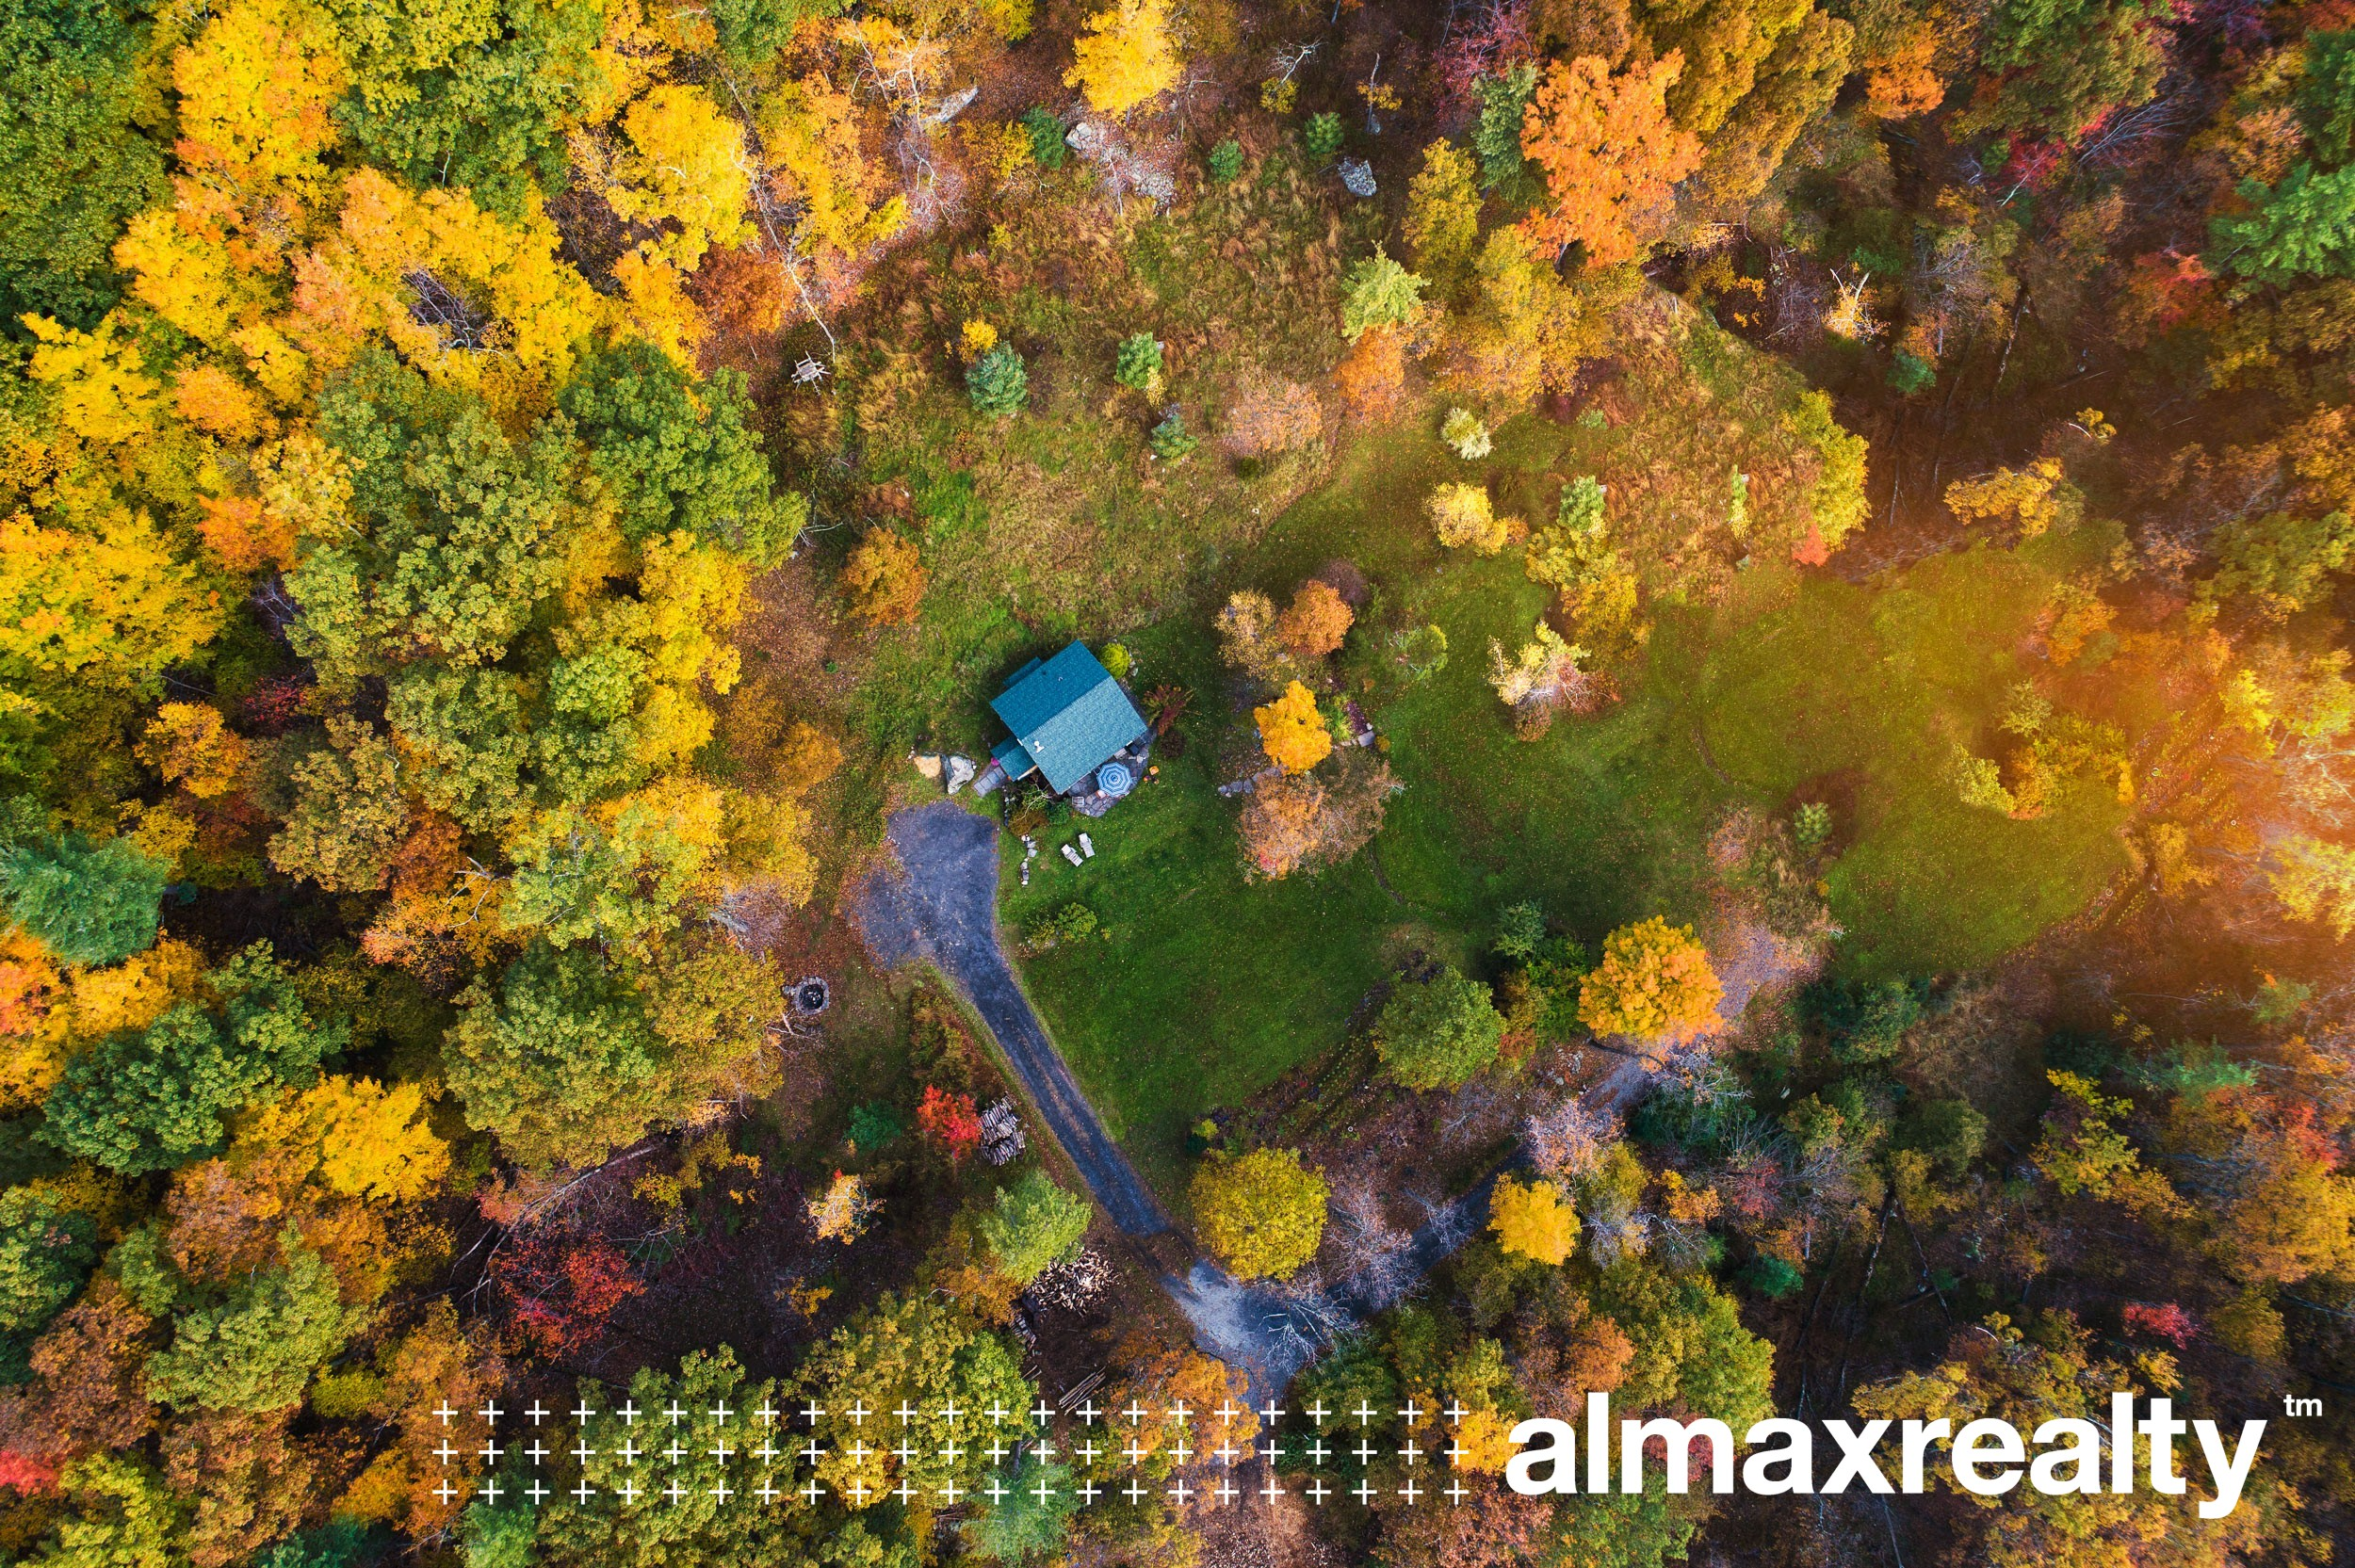 Why is my home not selling? Top 6 real estate marketing blunders that could be hindering your home sale in the Hudson Valley. By Realtor Dino Alexander